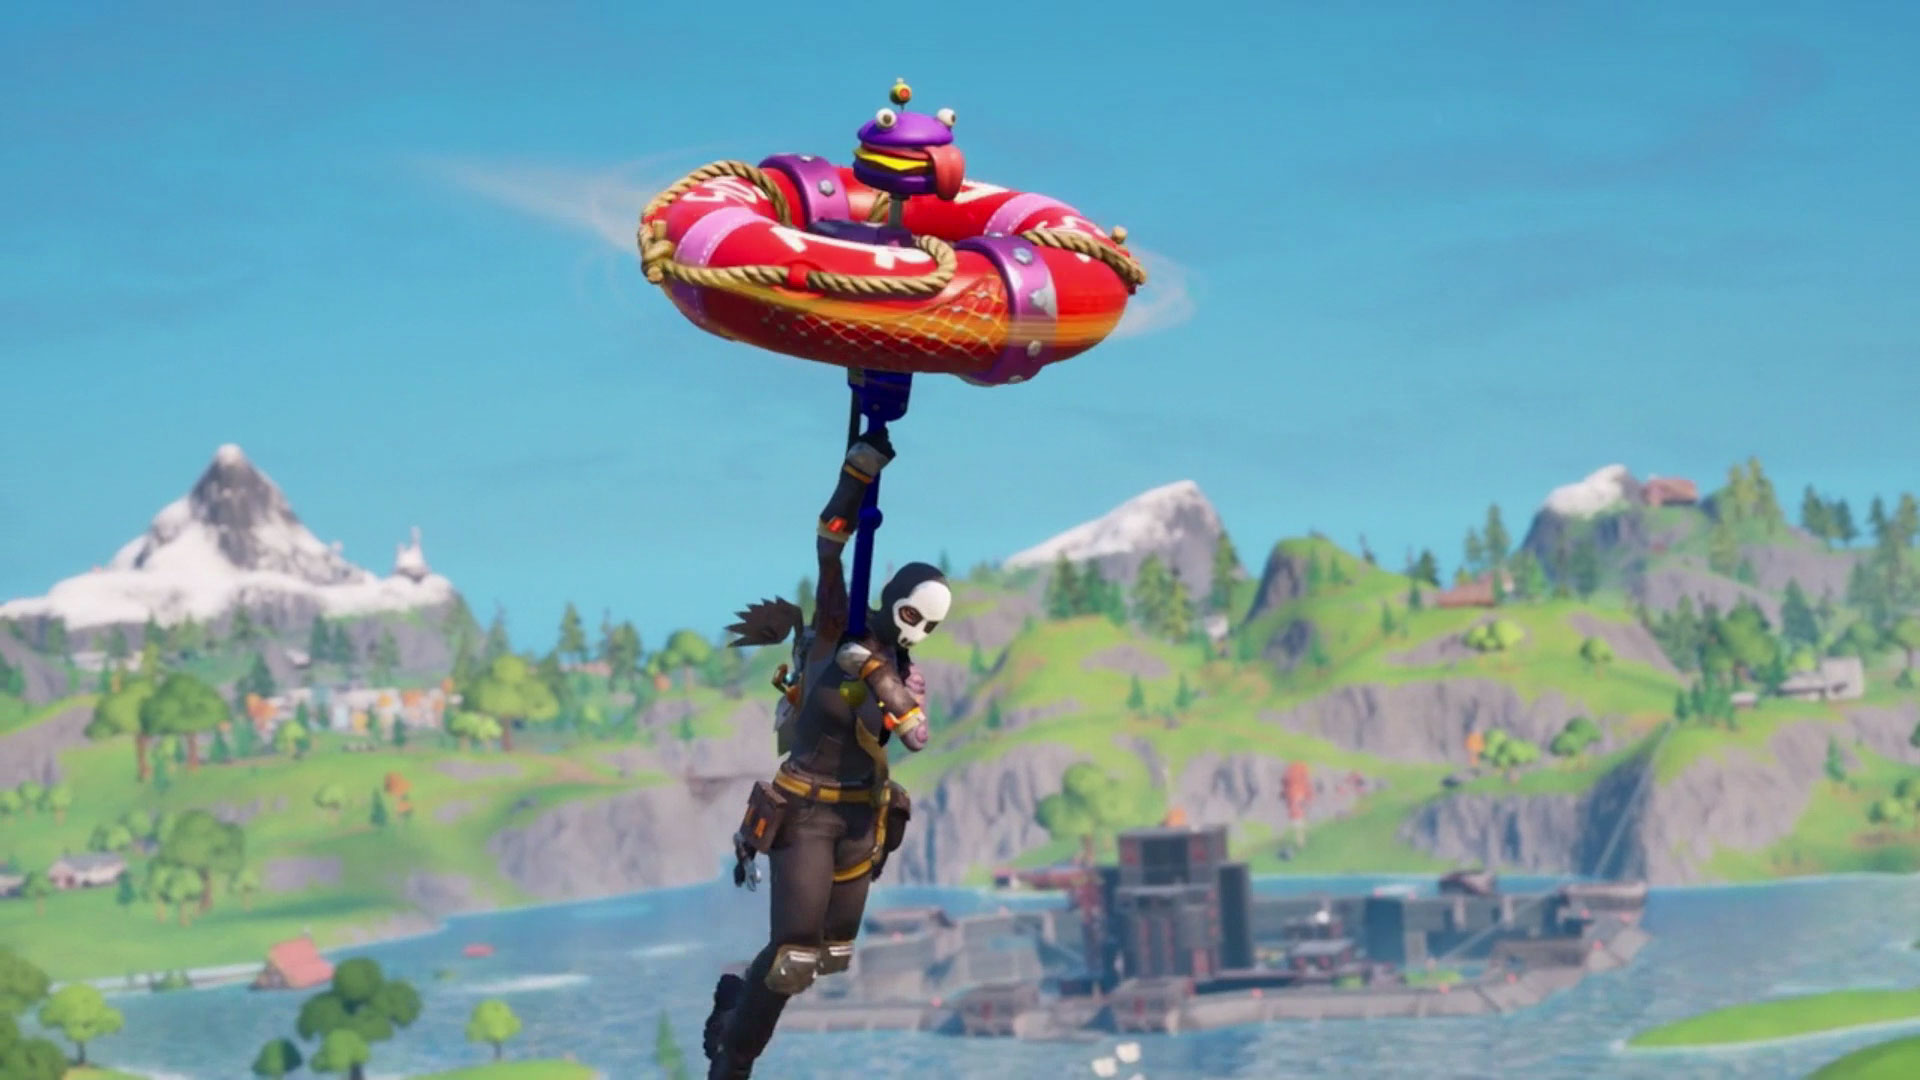 How To Remove Whole Biulding In Creative Fortnite Fortnite Build A Brella Challenges How To Completely Customise Your Umbrella Glider Gamesradar